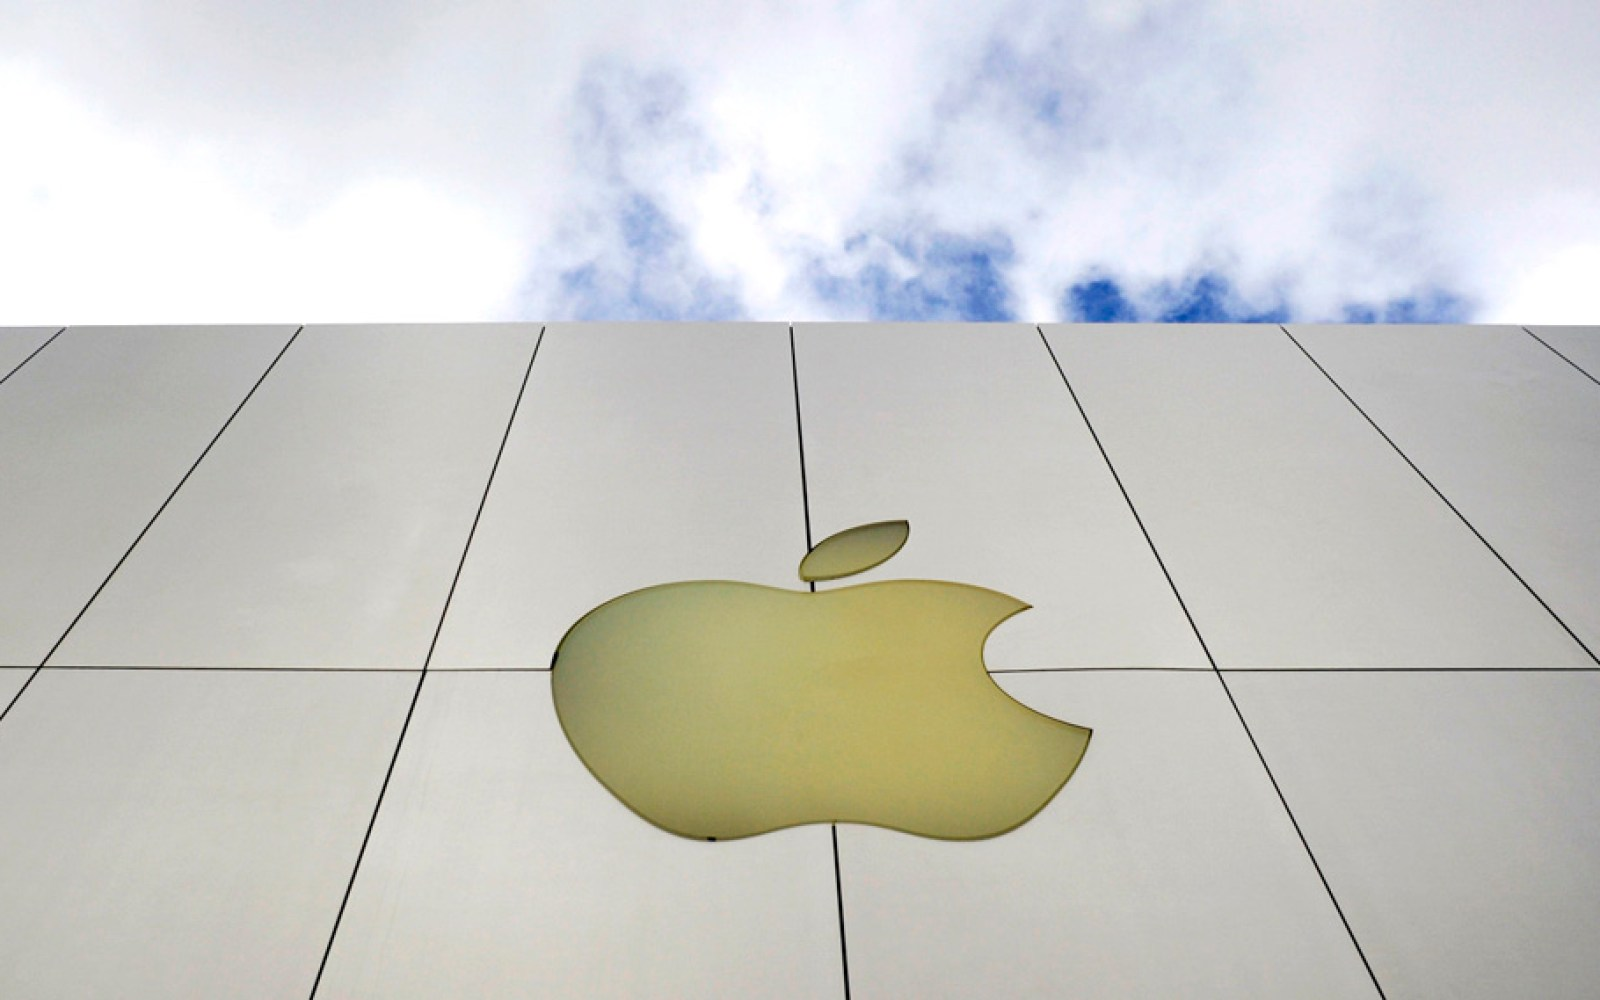 Apple's accelerated AAPL stock repurchasing suggests it expects the stock price to climb